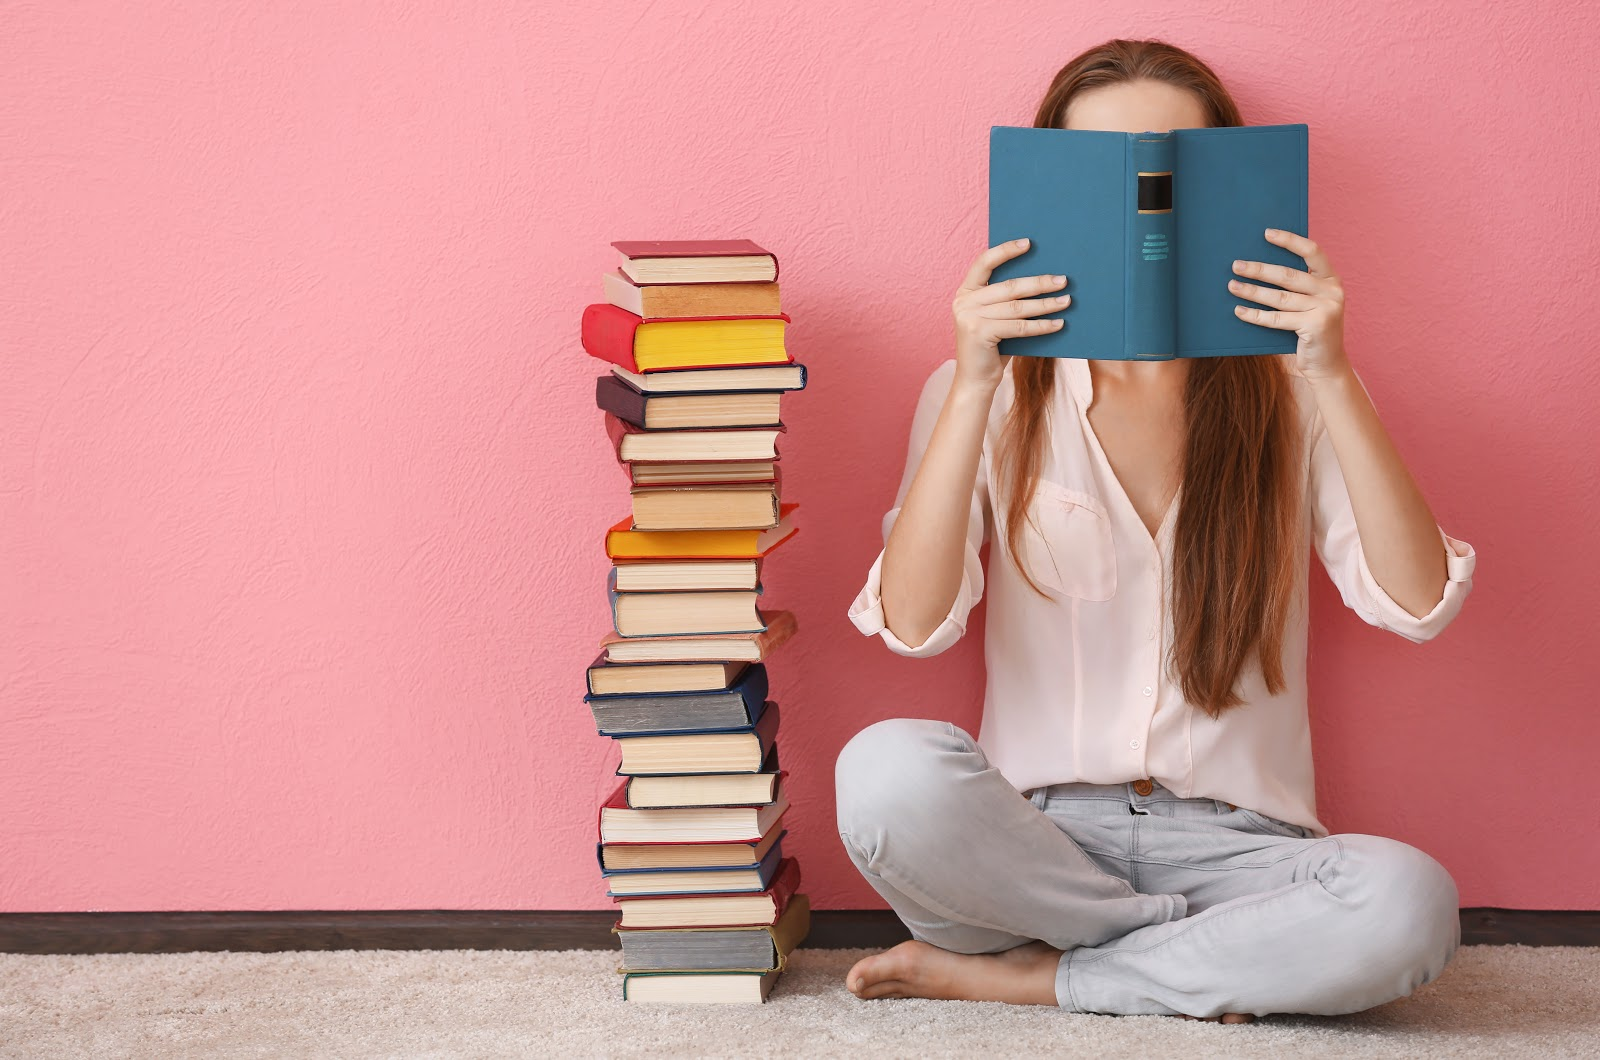 Young woman sitting next to a pile of books, reading